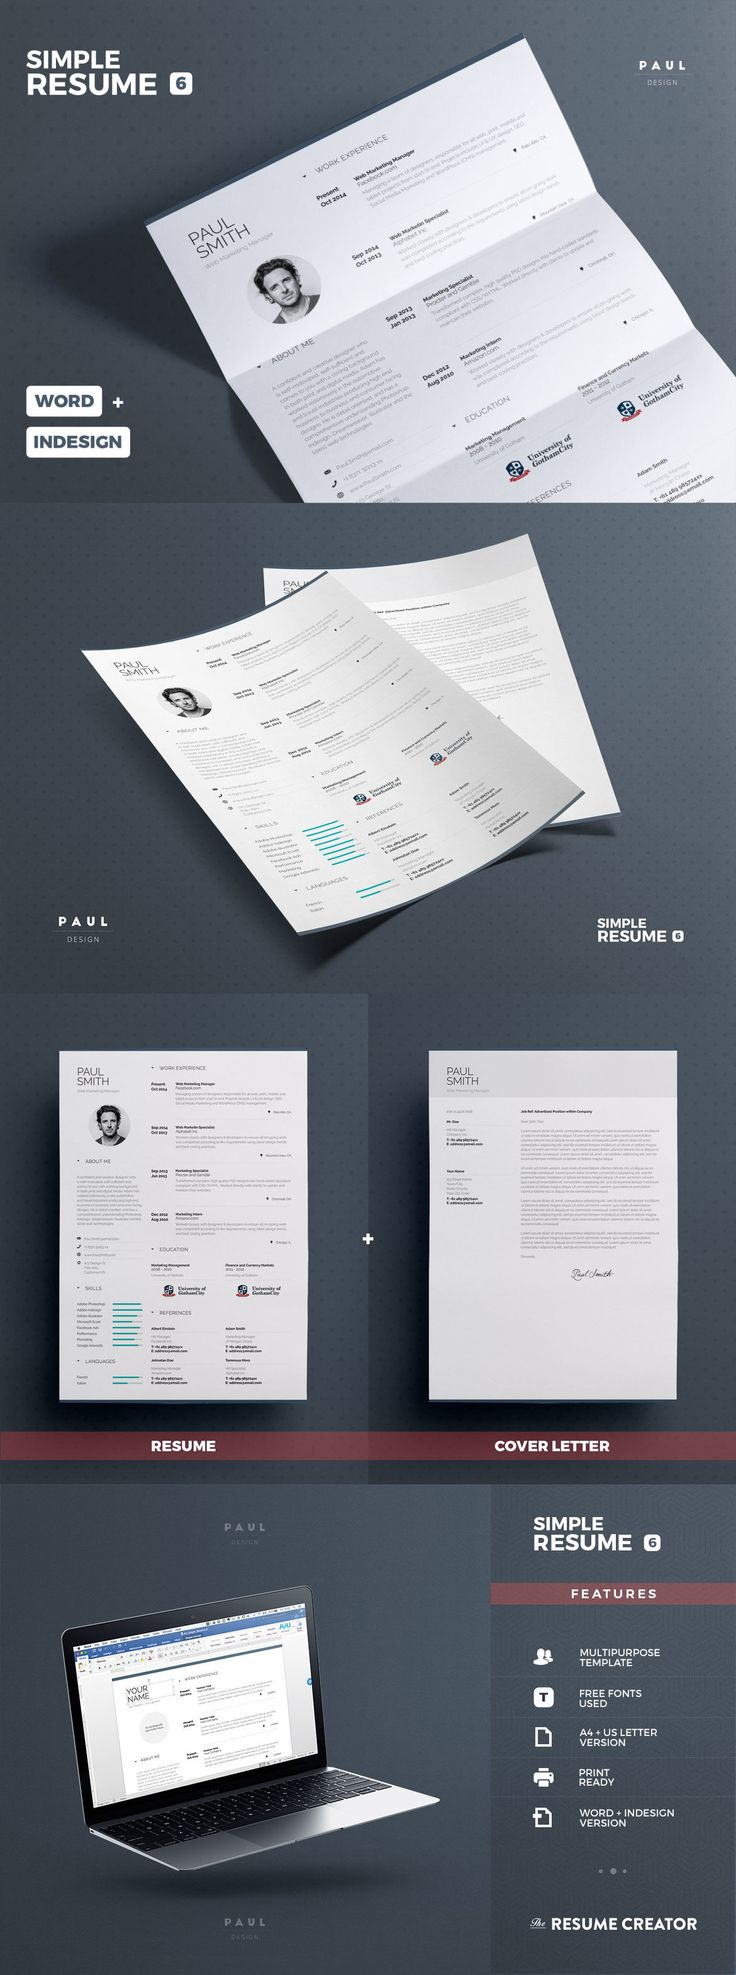 Simple Resume Cv Template InDesign INDD